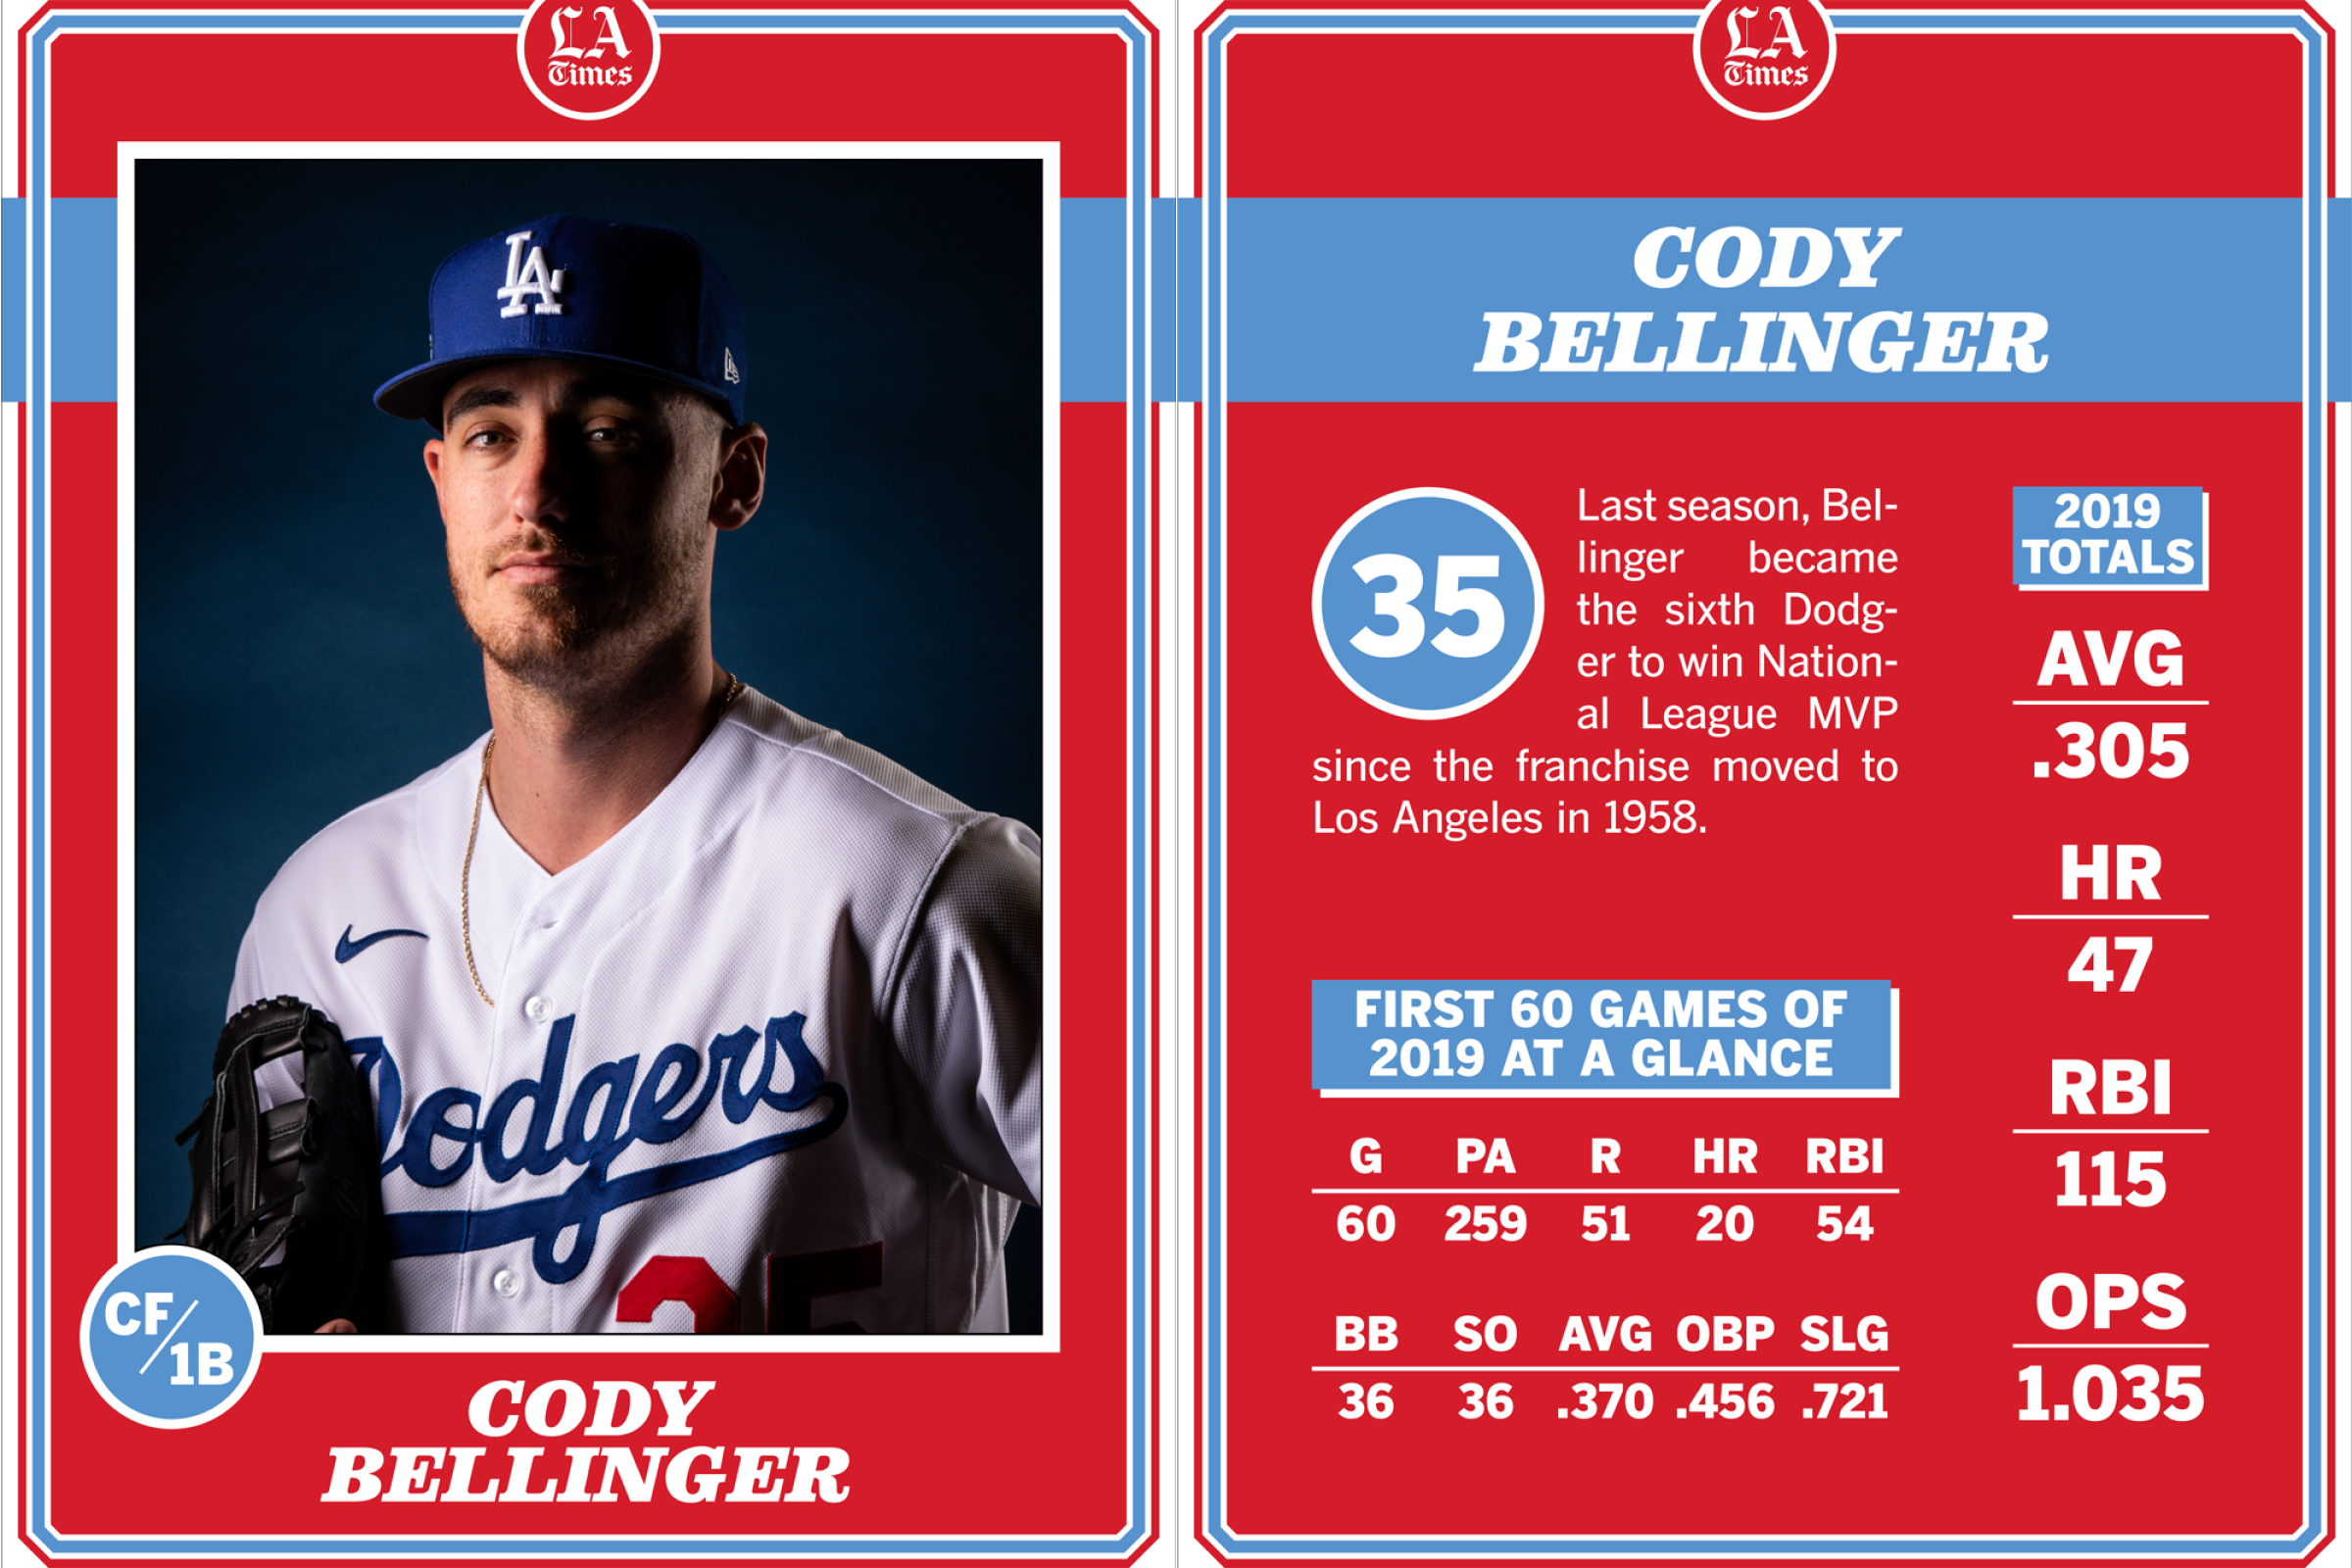 Cody Bellinger will start in center field for the Dodgers on opening day.